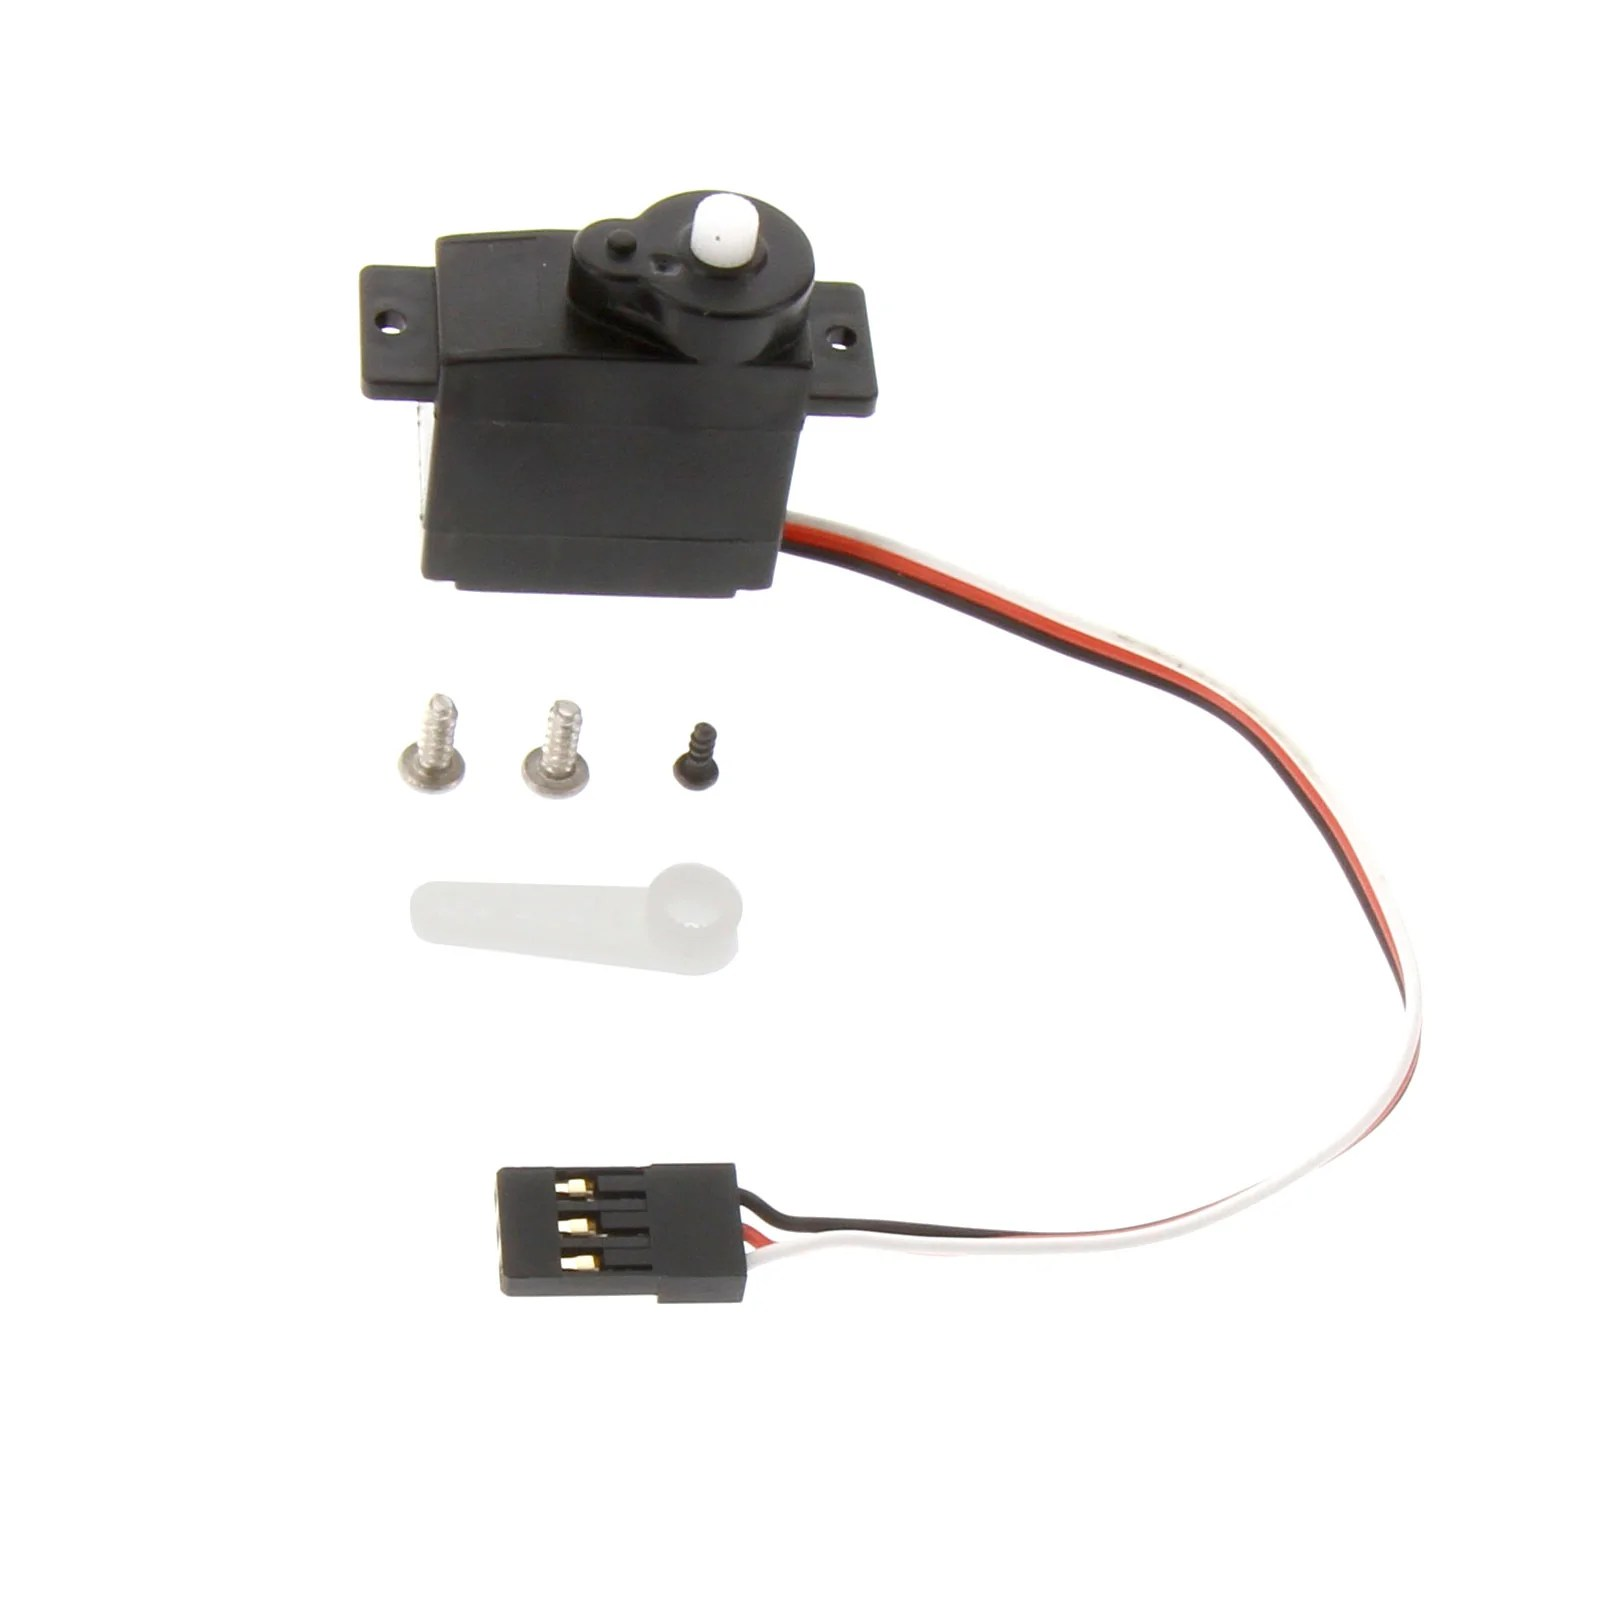 hight resolution of atomik rc 9g rudder servo for barbwire 1 2 3